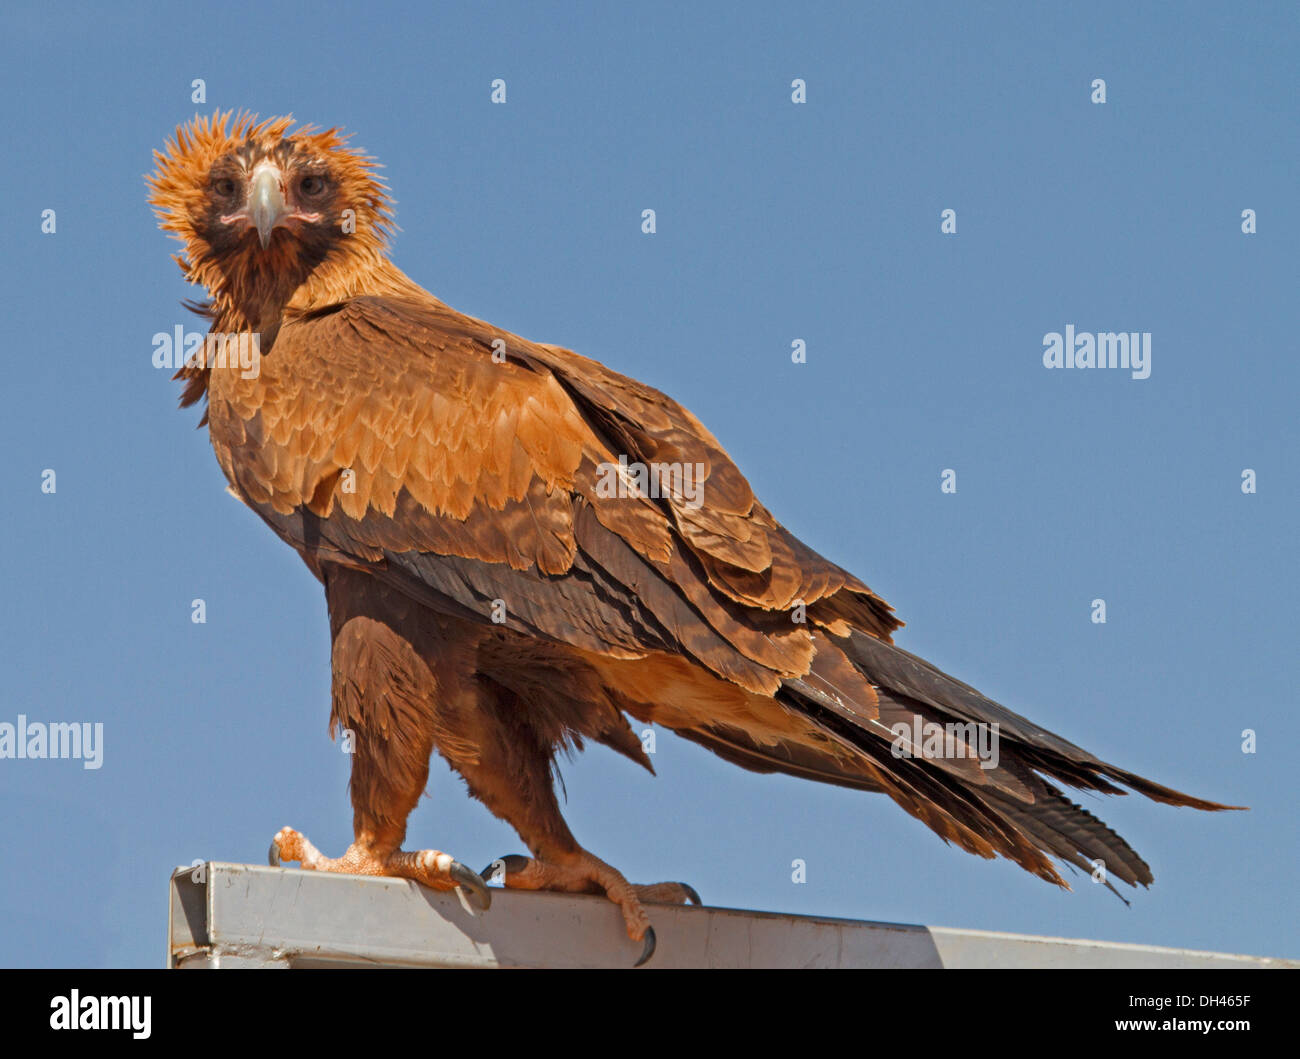 Wedge-tailed eagle, Aquila audax in the wild on railing and against blue sky in Australian outback in the Northern Territory - Stock Image